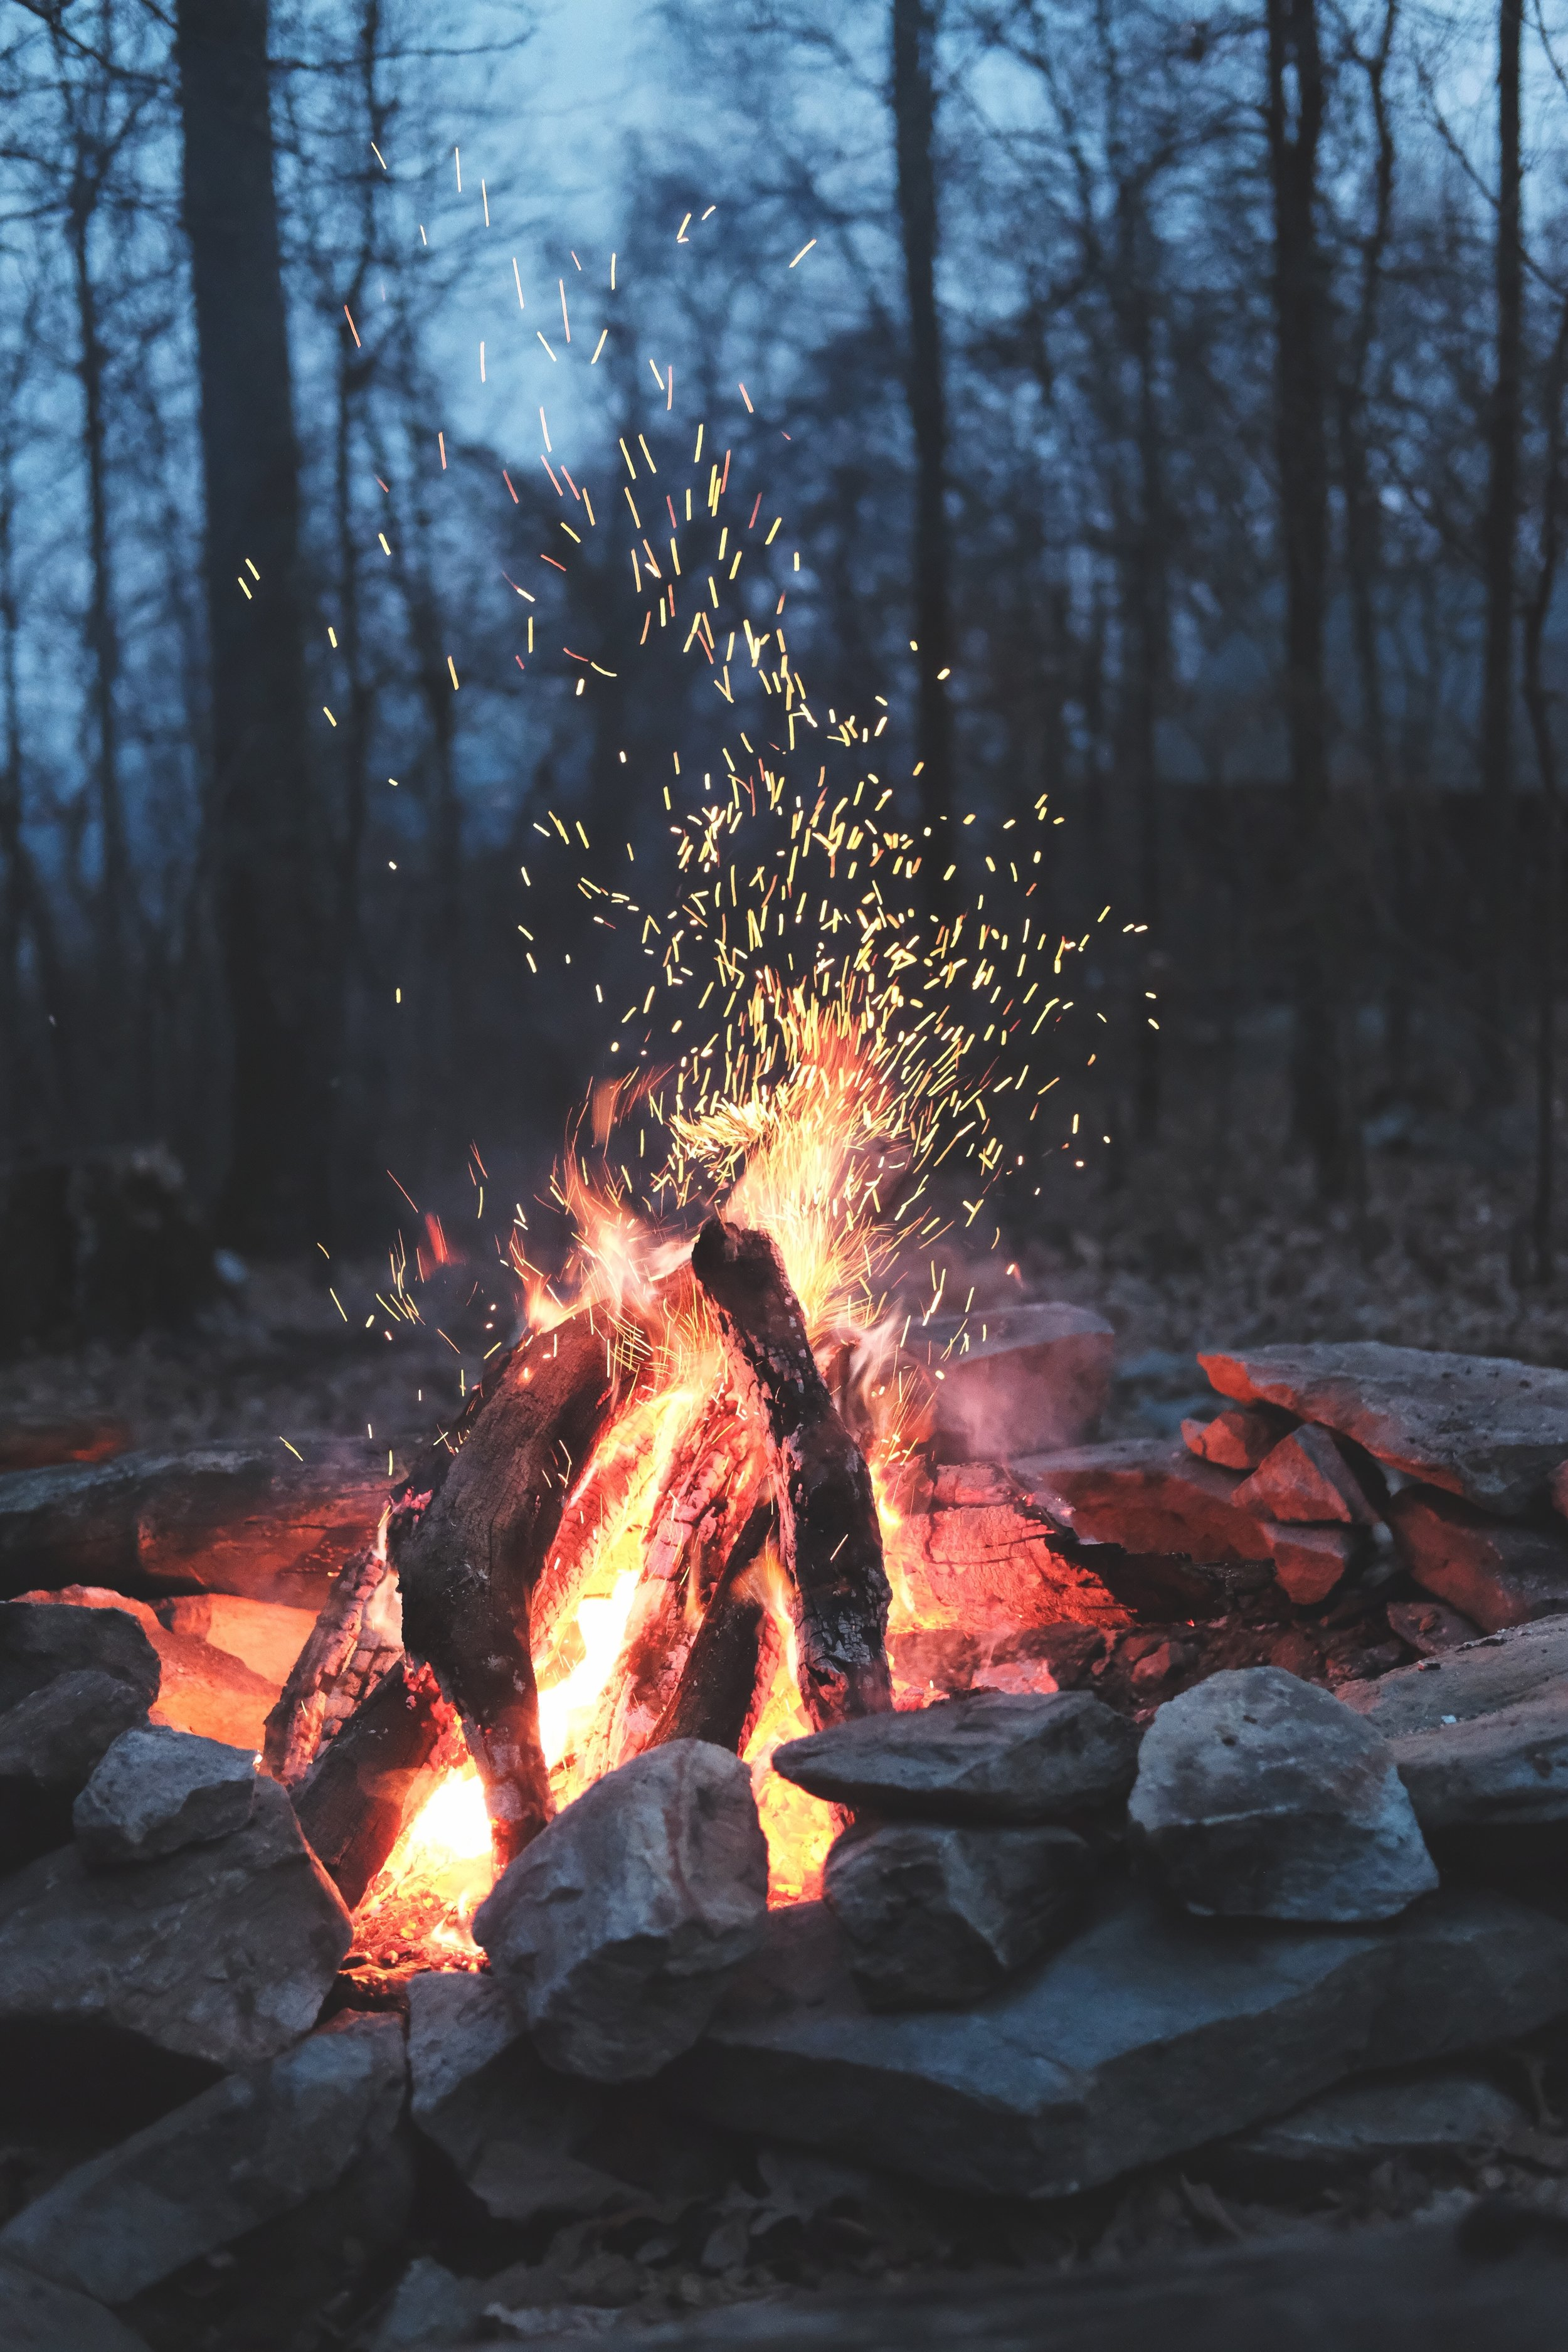 Fire Ceremony for Winter Solstice 2017